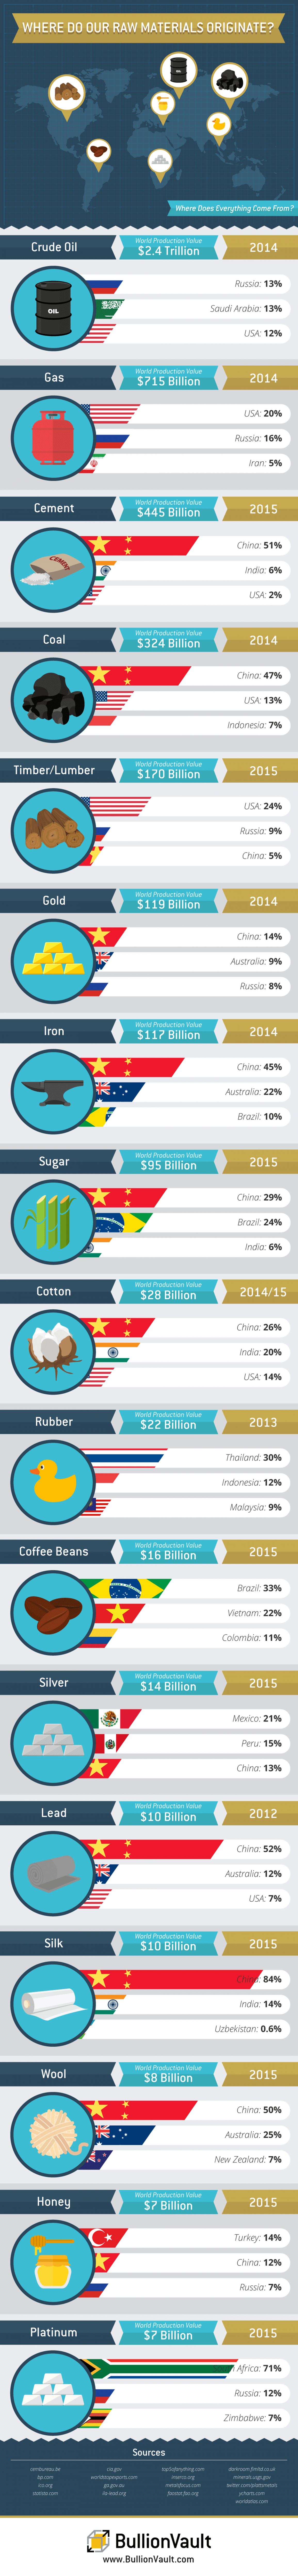 Where Do Our Raw Materials Come From? Infographic